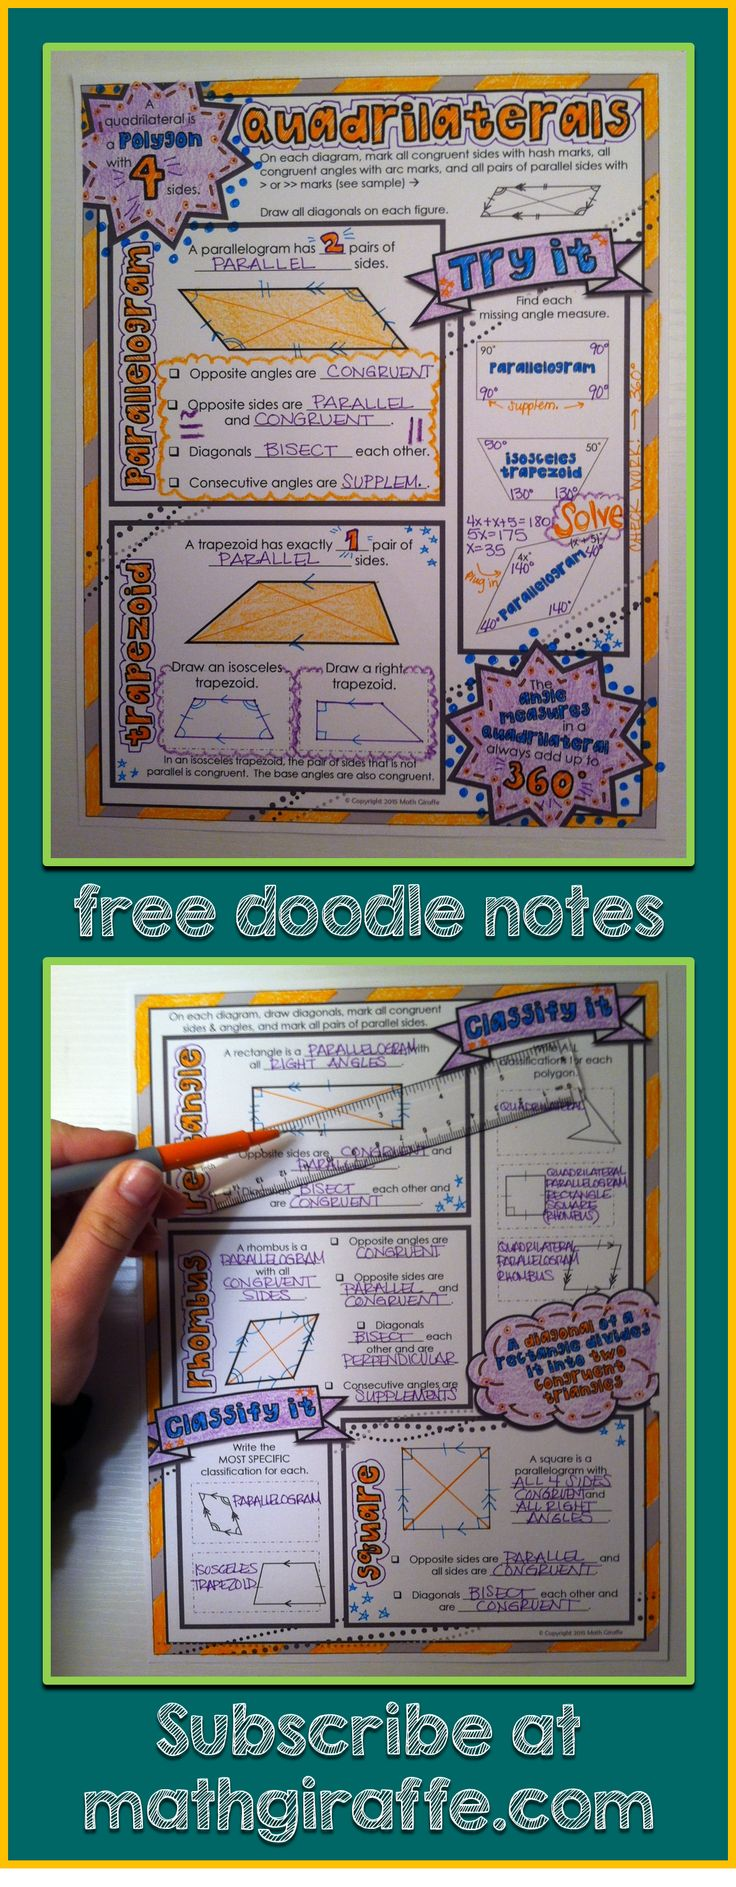 Quadrilaterals - classifications & properties: Free Doodle Notes for left and right brain communication in math class